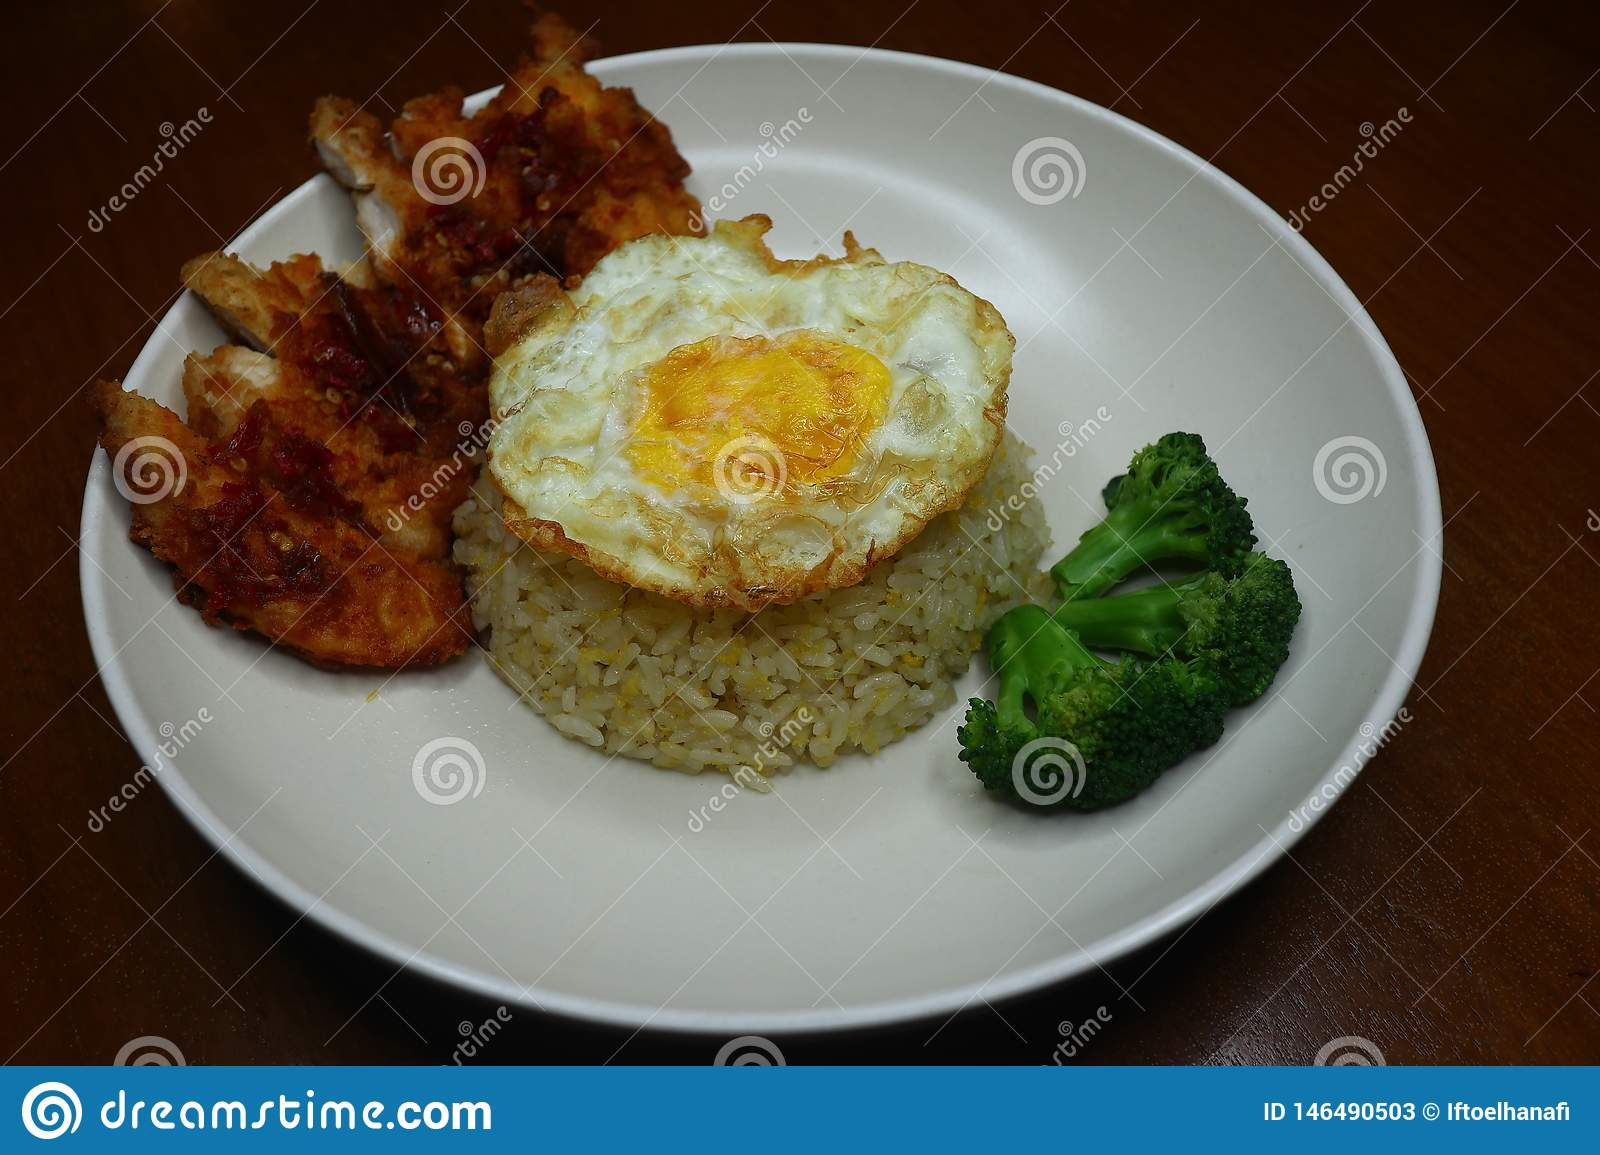 Special fried rice with spicy chili fried chicken sauce, broccoli and fried omelet